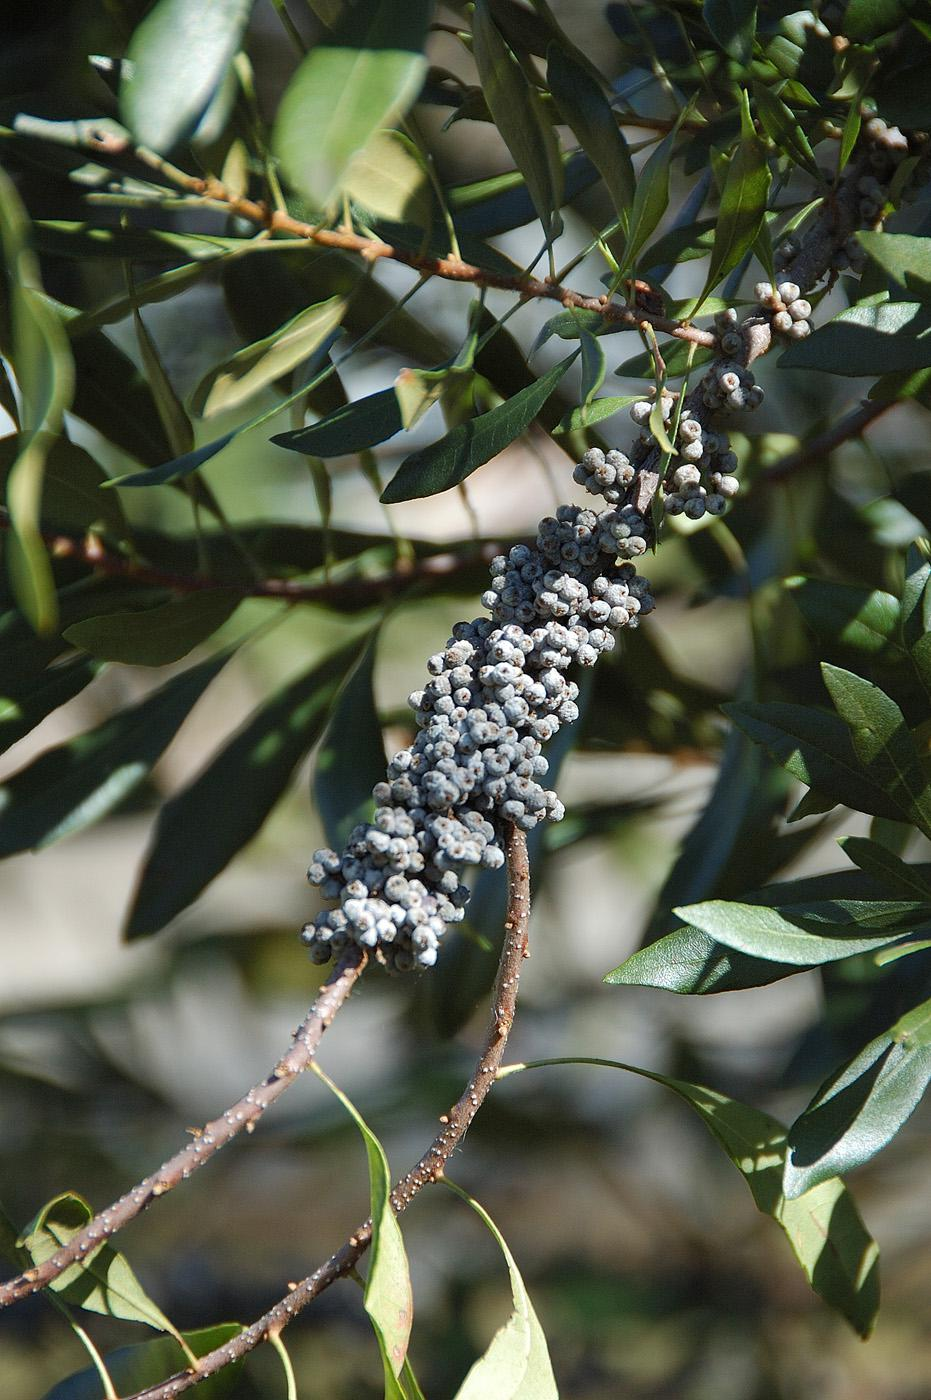 The wax myrtle produces thousands of small, waxy, blue berries that feed around 40 species of birds.